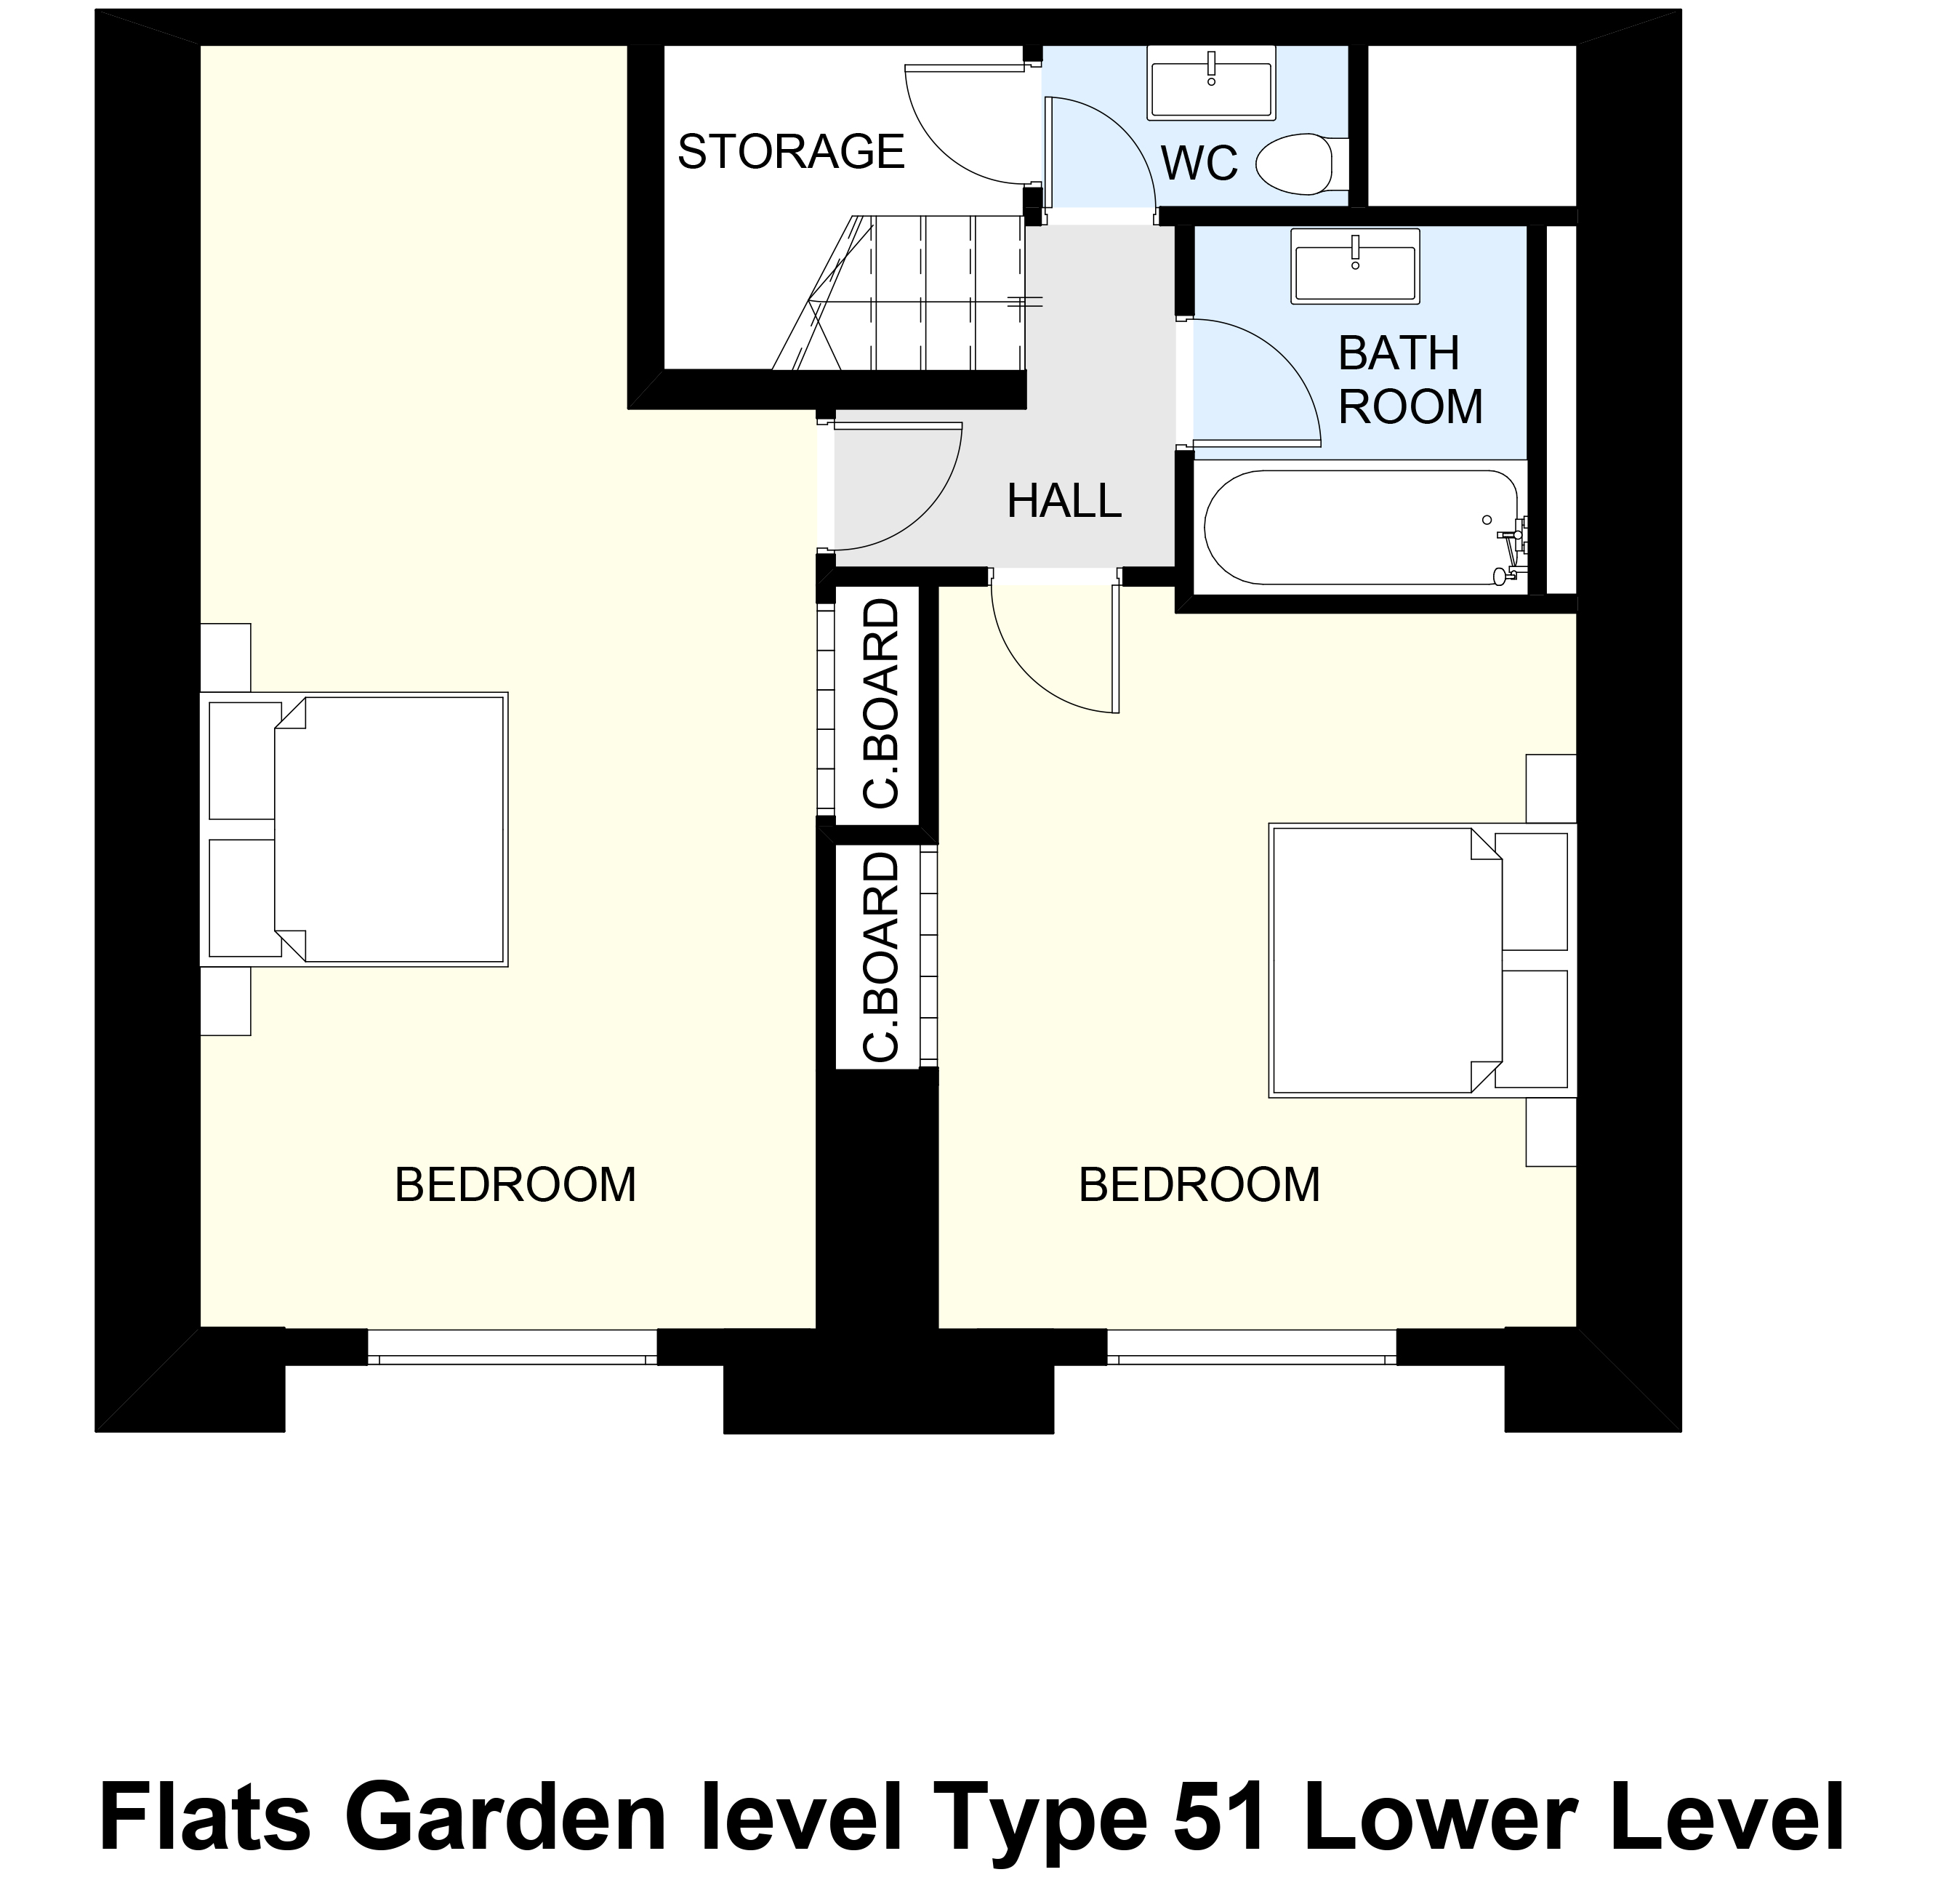 Flats Garden level Type 51 Lower Level